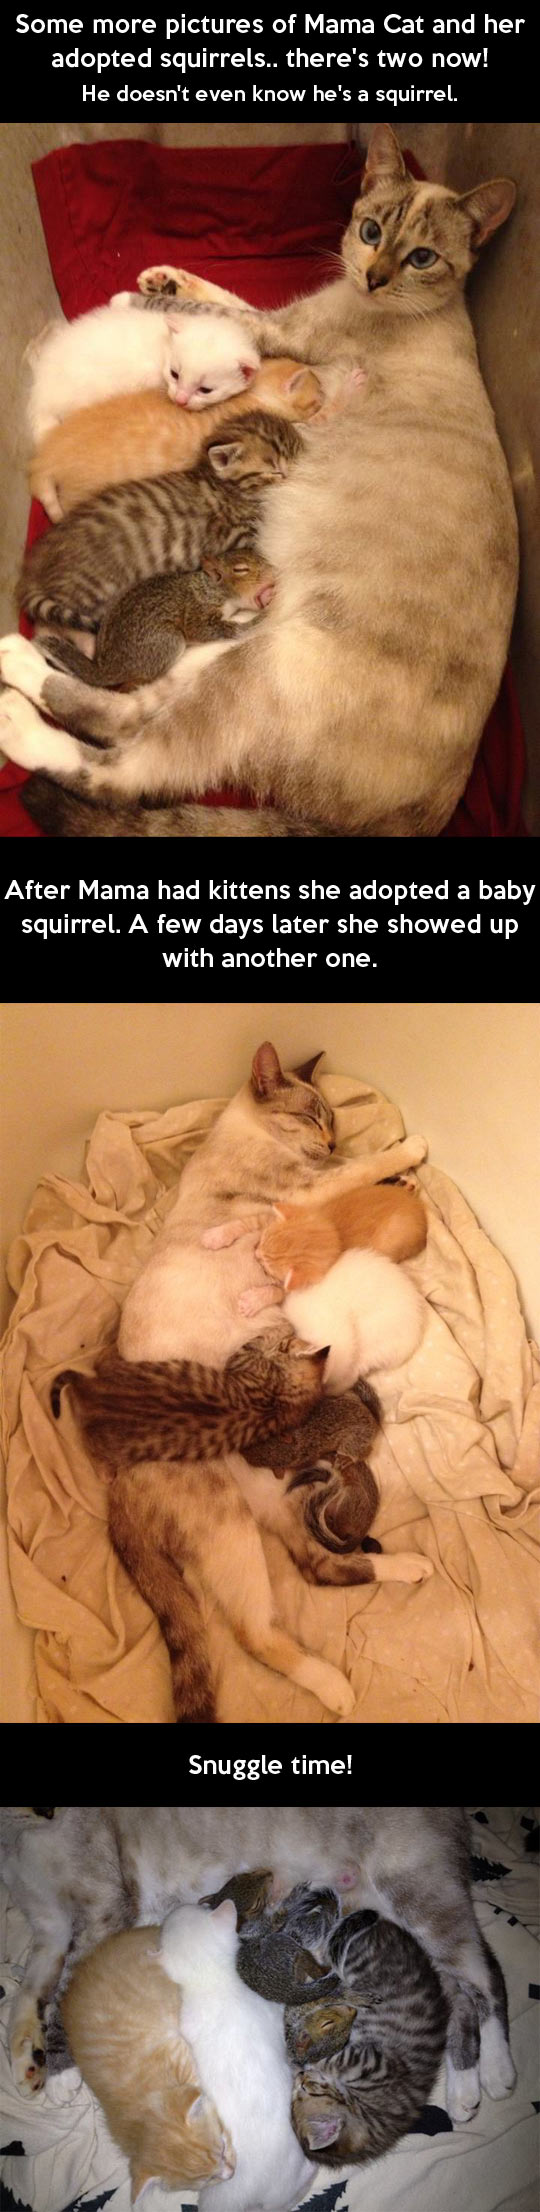 funny-cat-kittens-squirrel-adopted